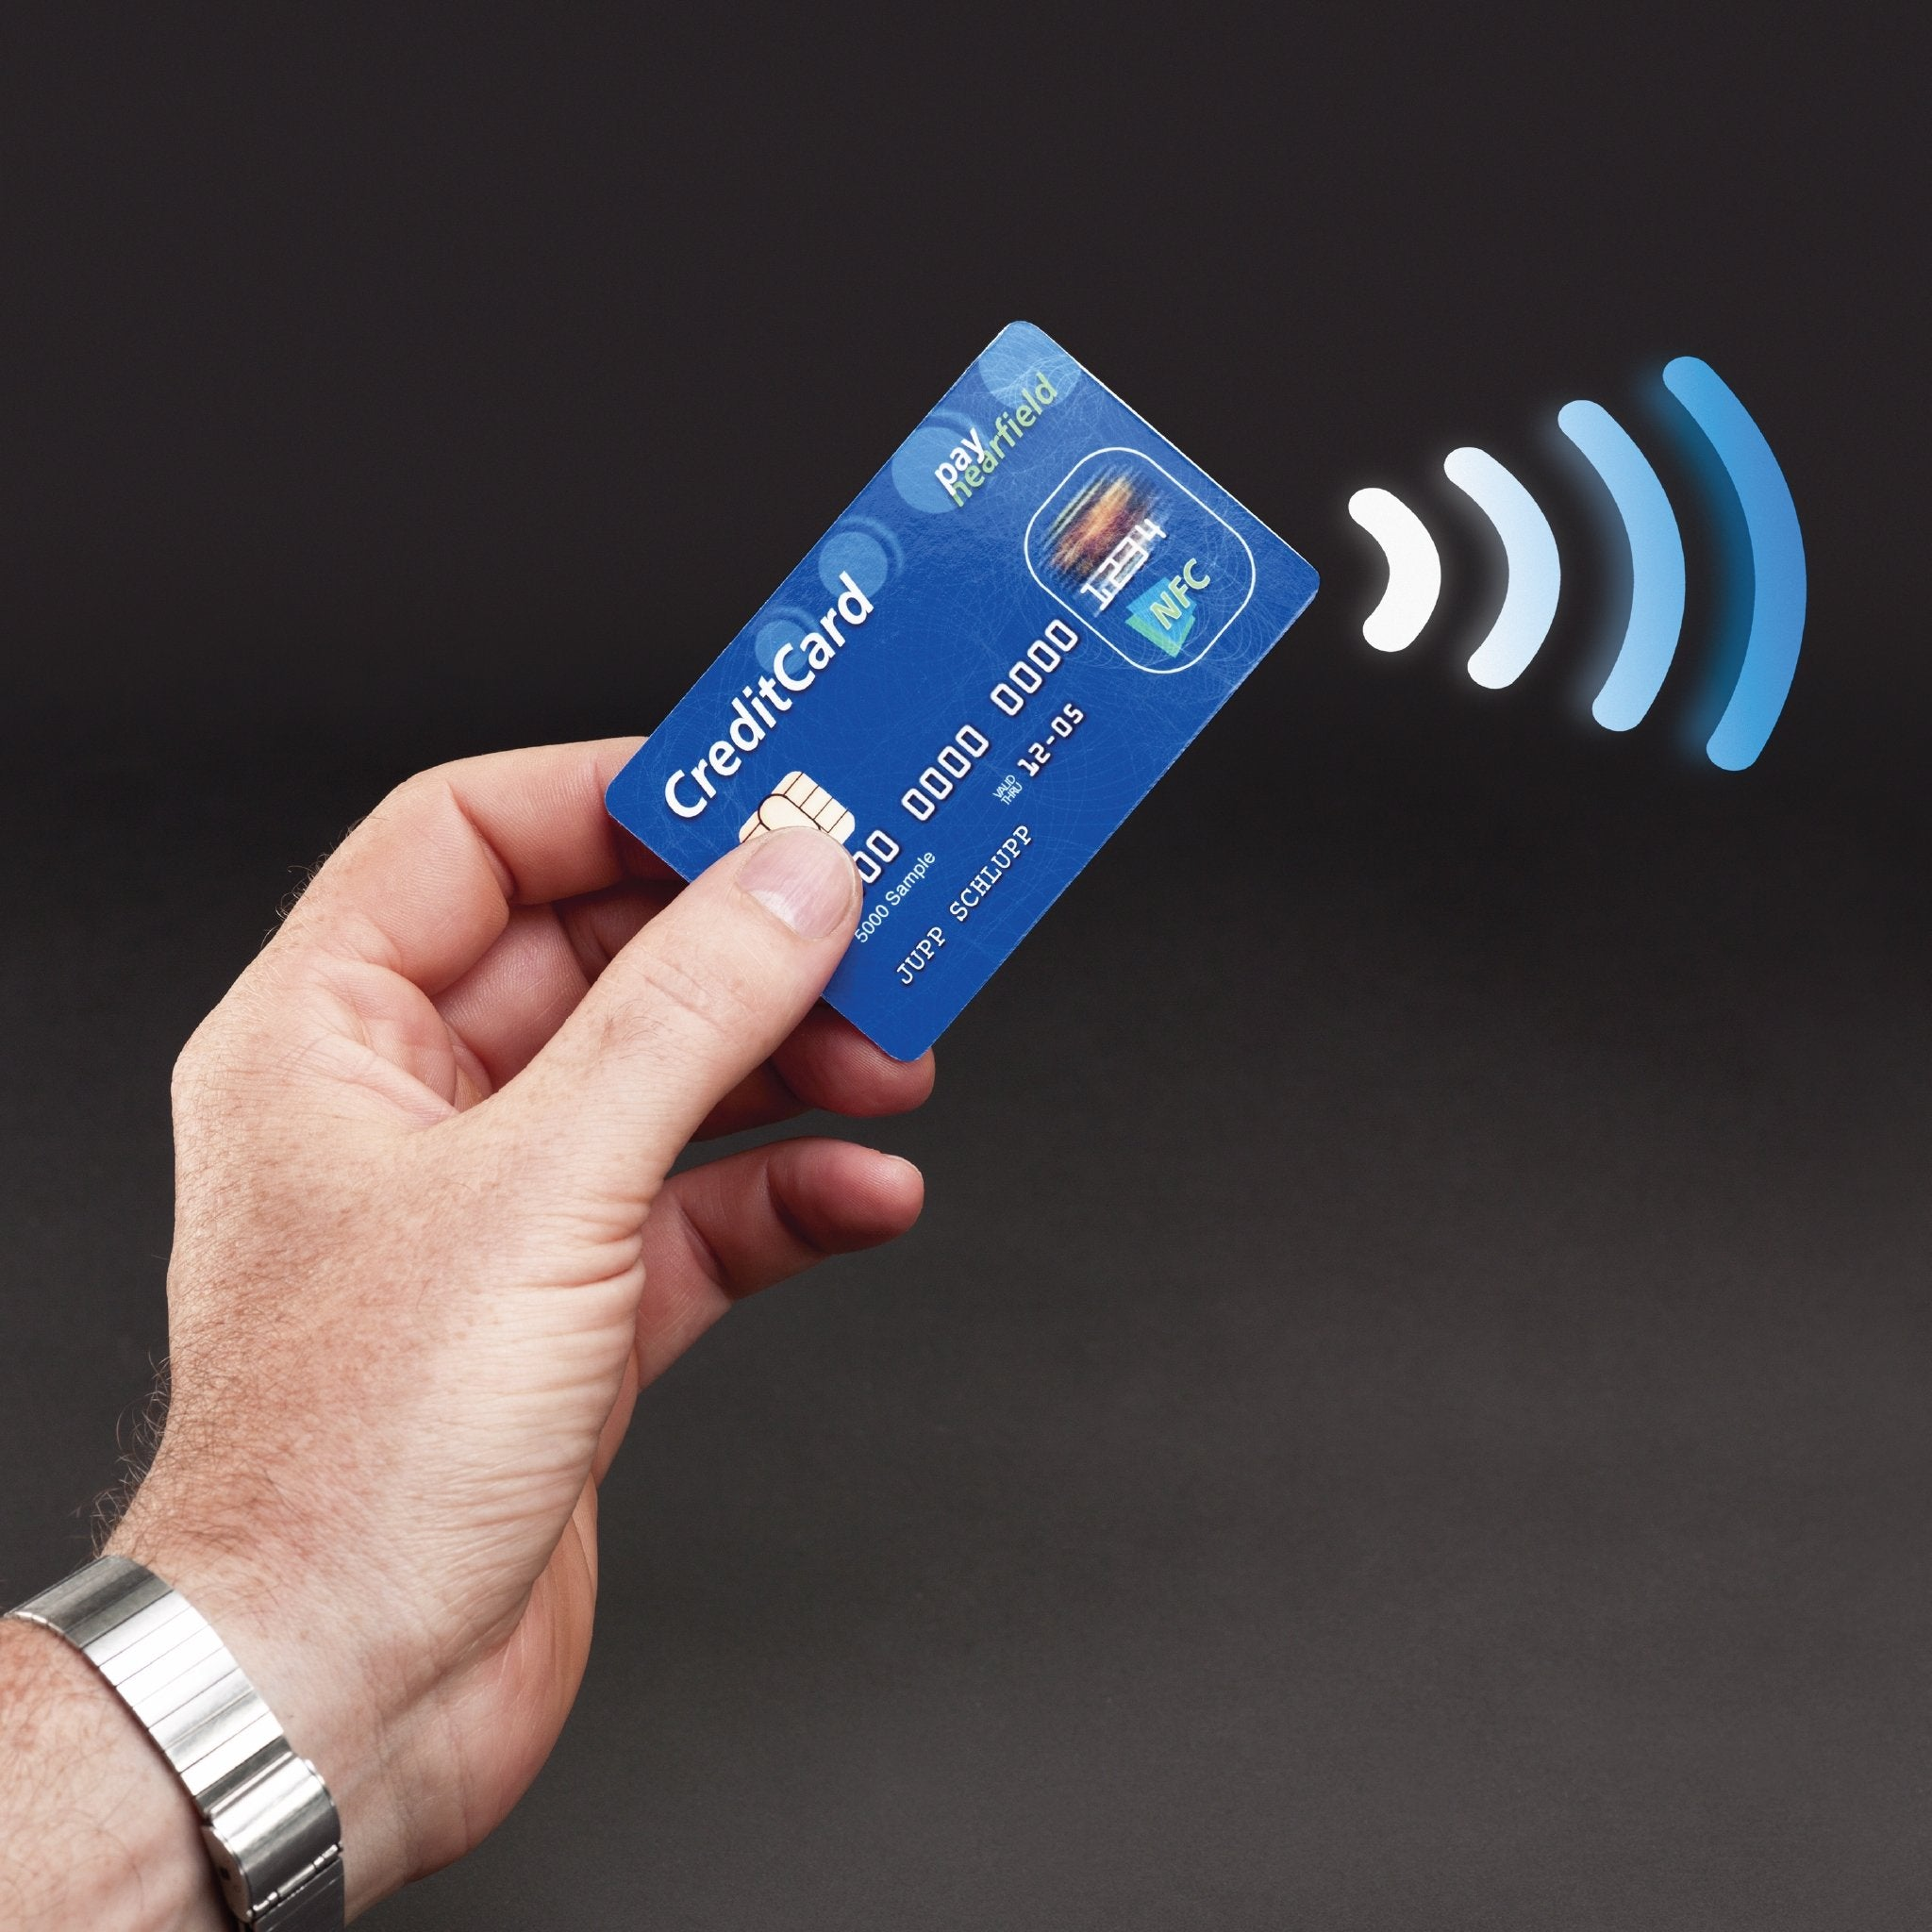 Not Sure If Your Cards Have RFID? Heres What to Check For: | CarbonKlip